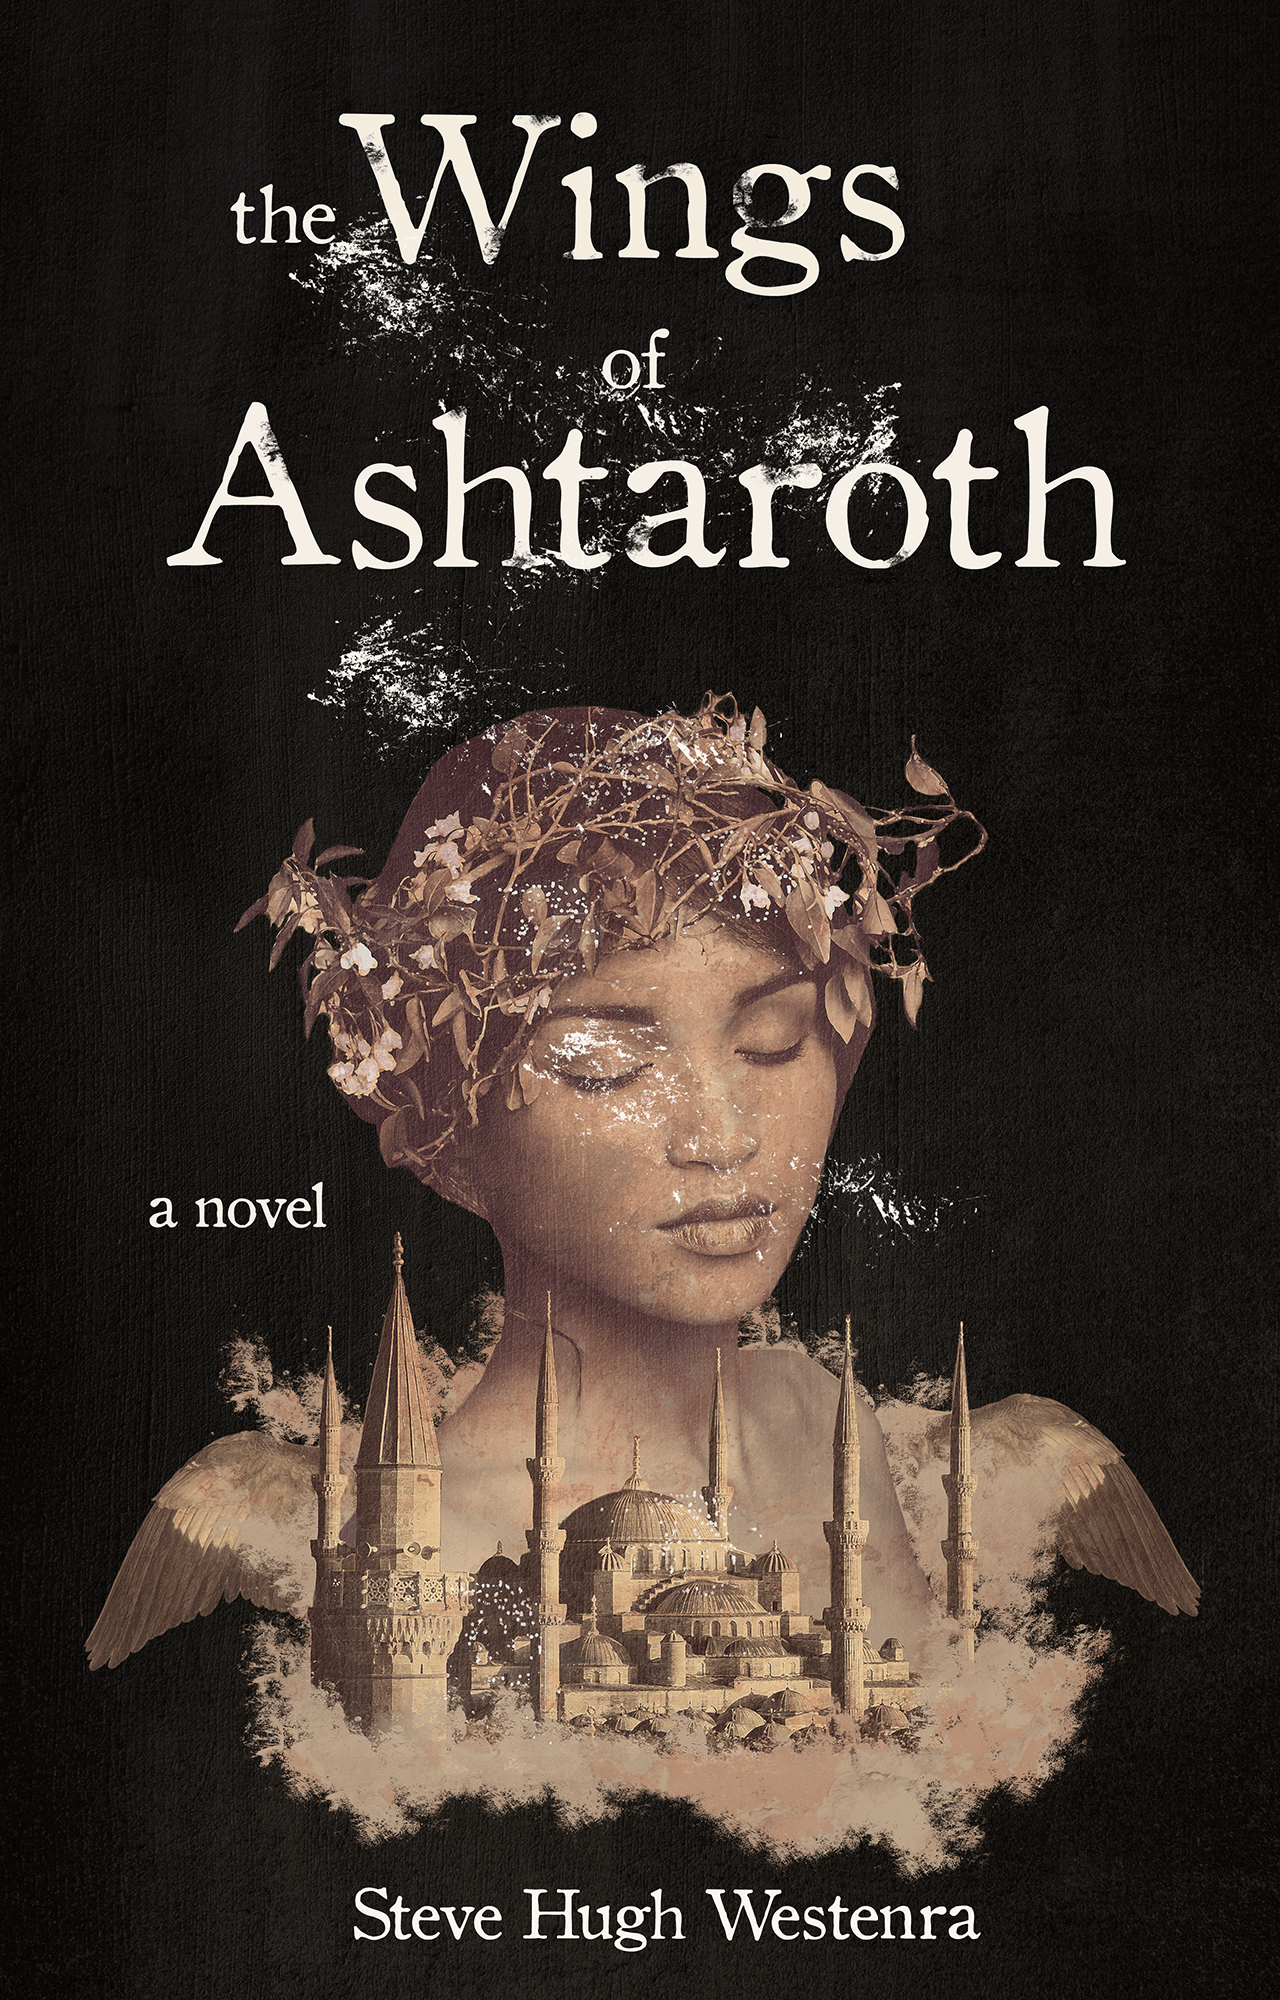 Cover Image for the Wings of Ashtaroth